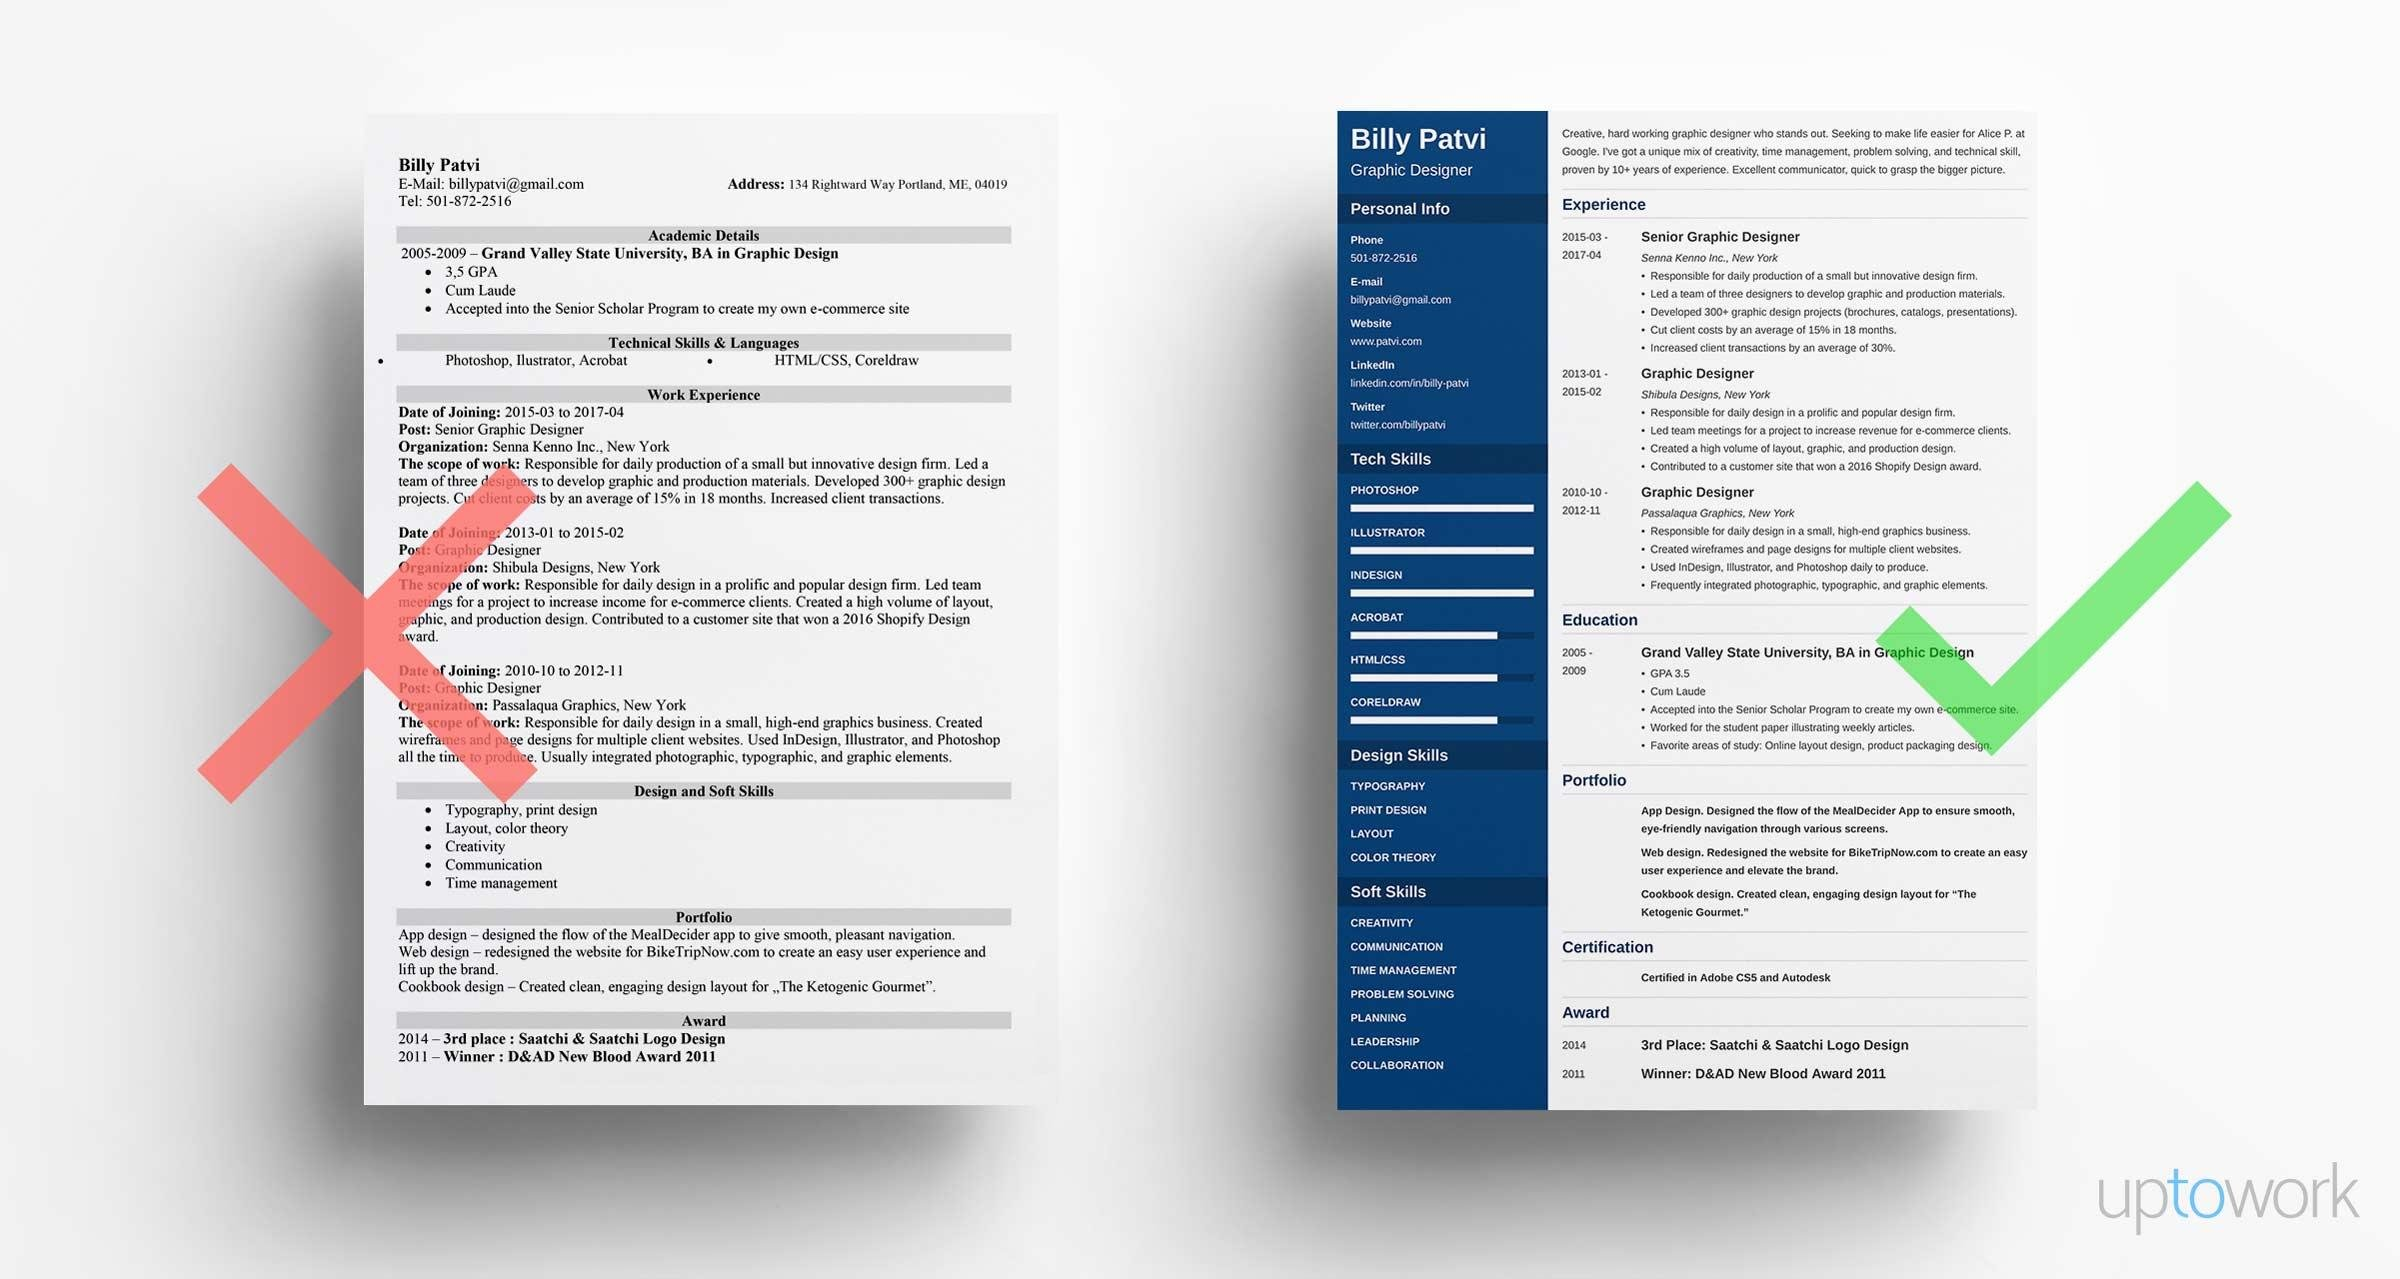 Graphic Design Resume: Sample U0026 Guide [+20 Examples]